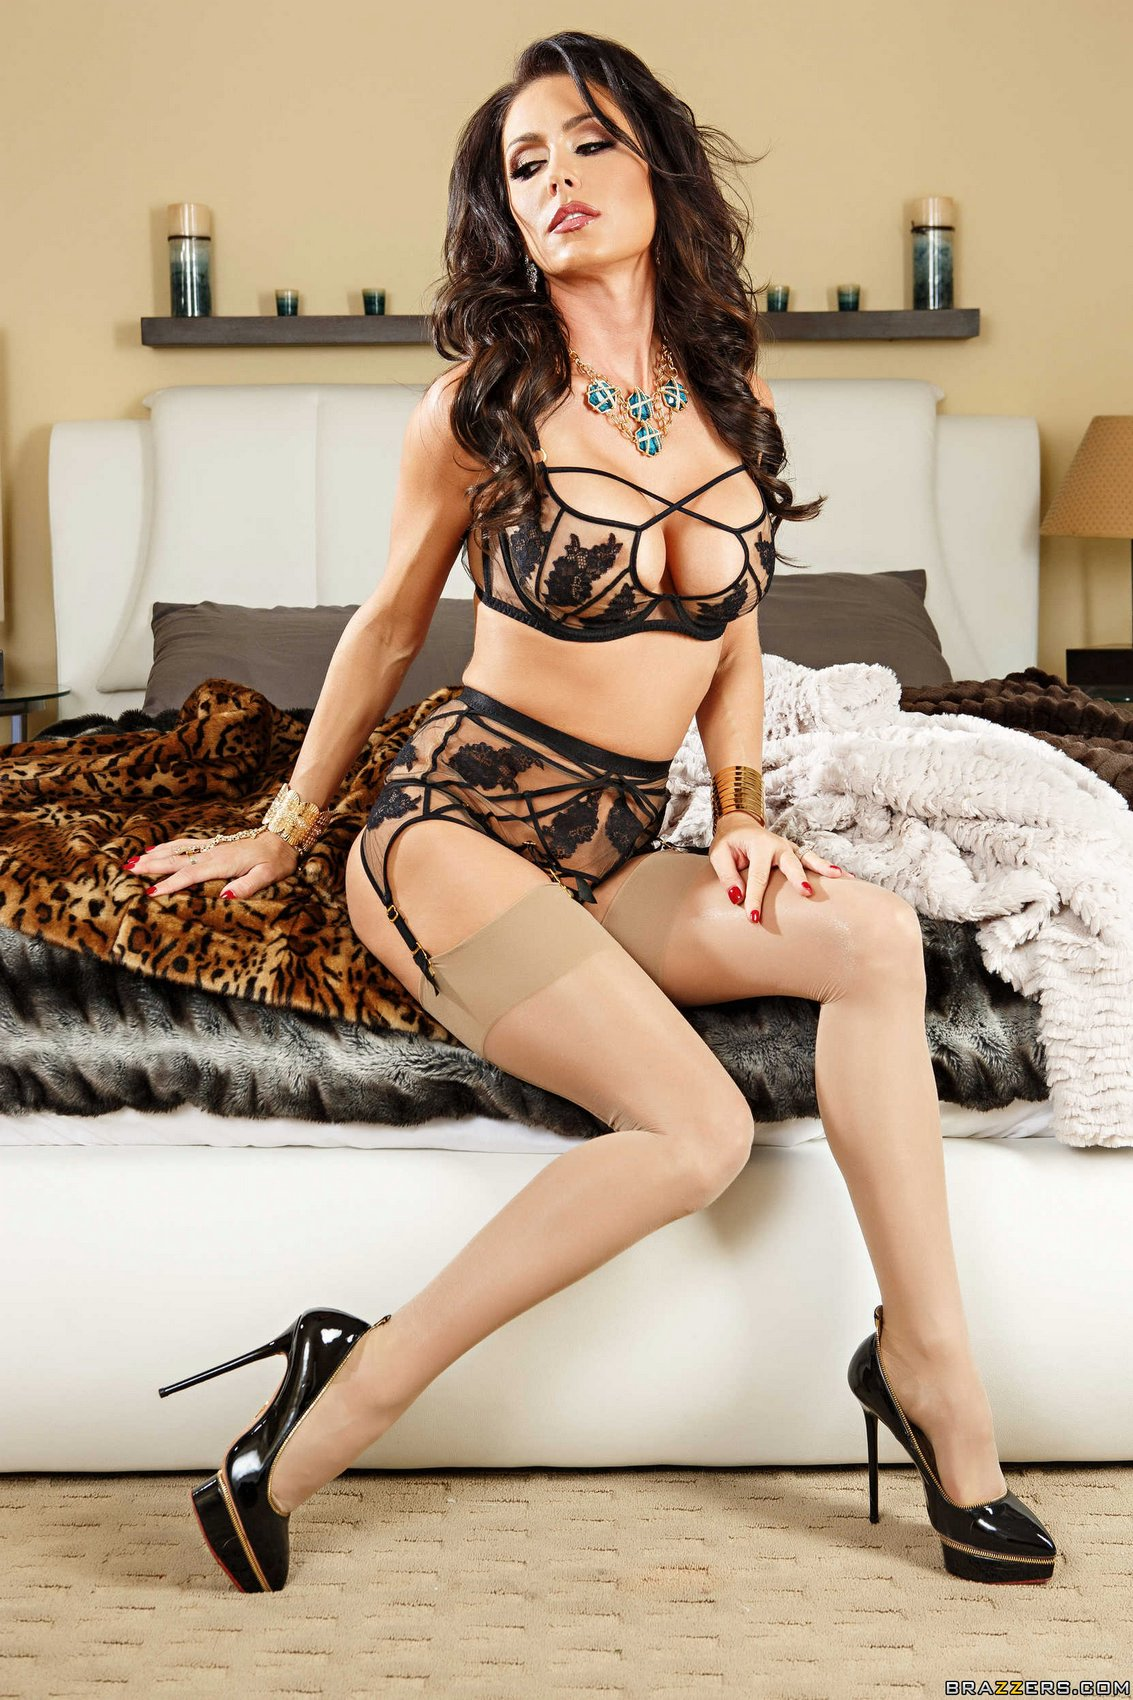 Escort jessica james, hot girl in dublin